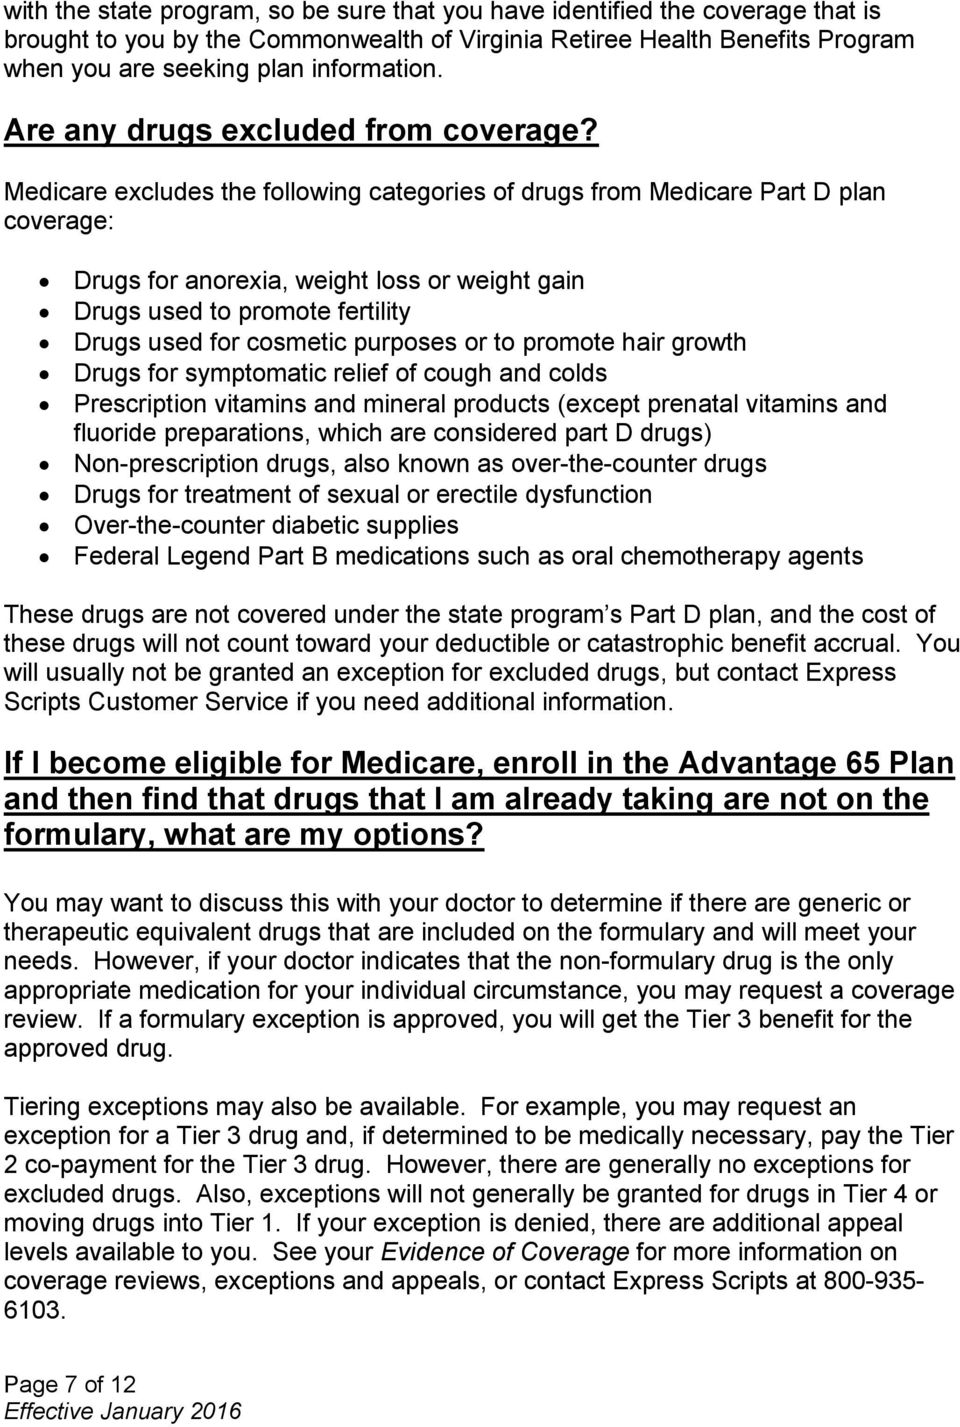 Medicare excludes the following categories of drugs from Medicare Part D plan coverage: Drugs for anorexia, weight loss or weight gain Drugs used to promote fertility Drugs used for cosmetic purposes